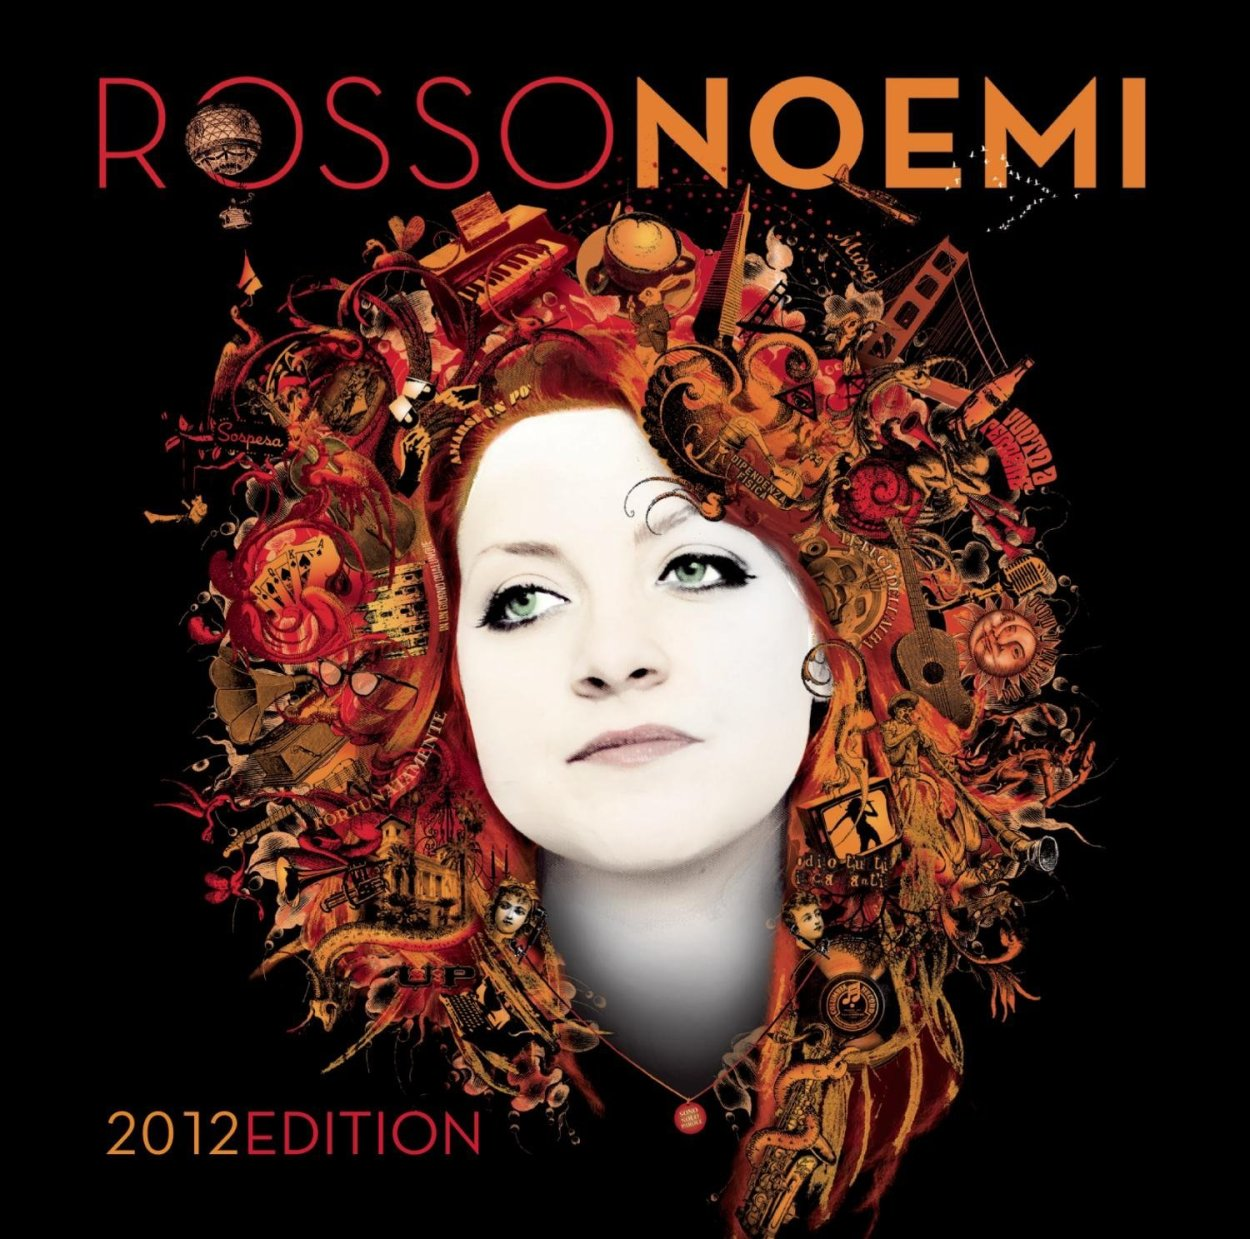 RossoNoemi 2012 edition